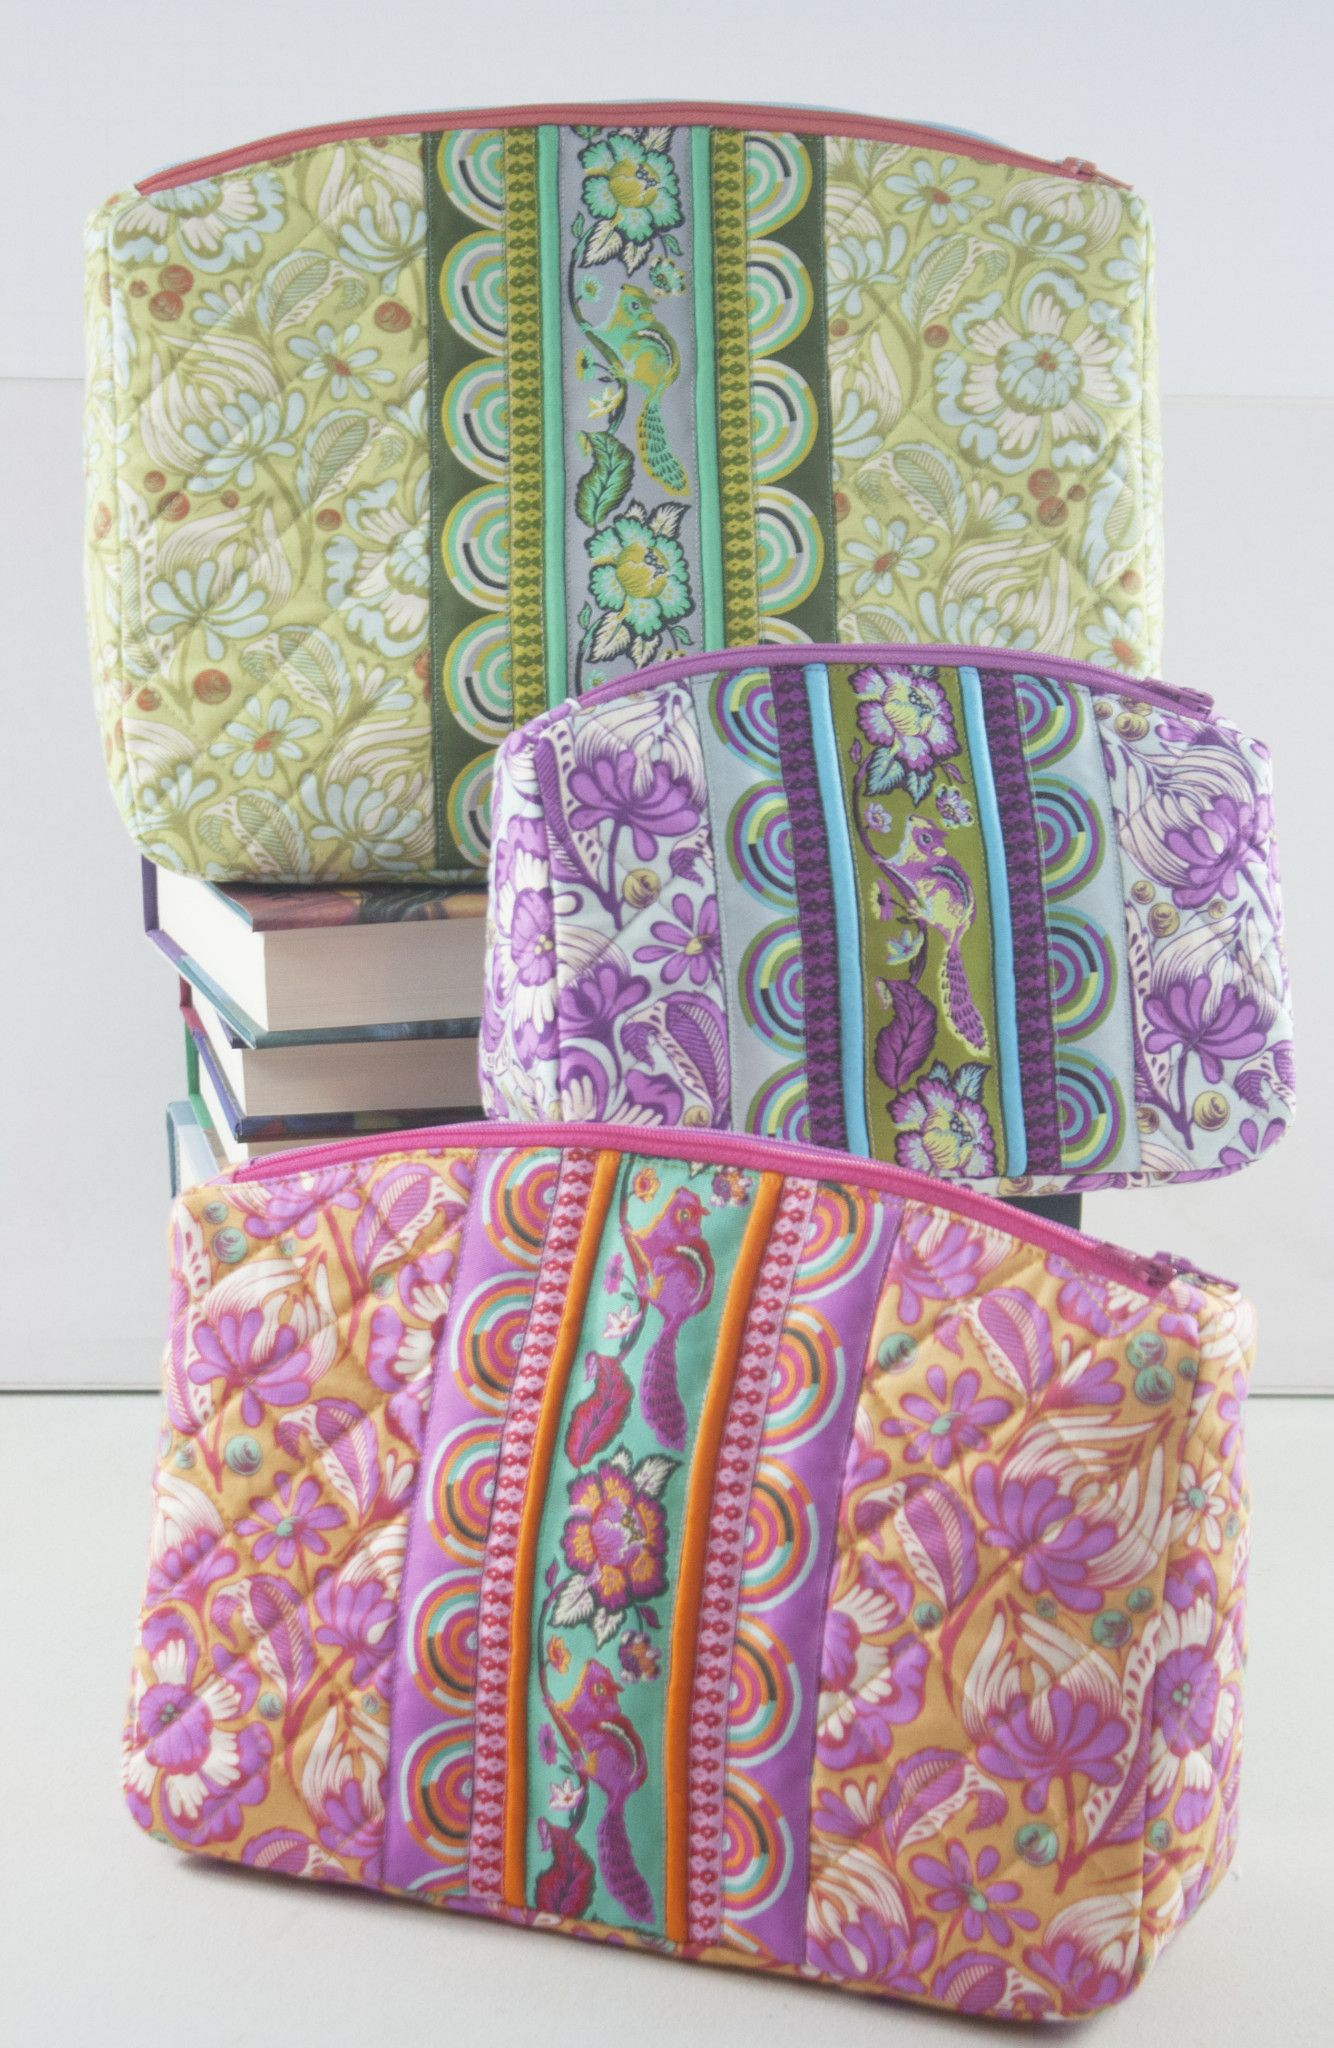 Sew Sweetness Filigree Double-Zip Pouches sewing pattern | DIY ...